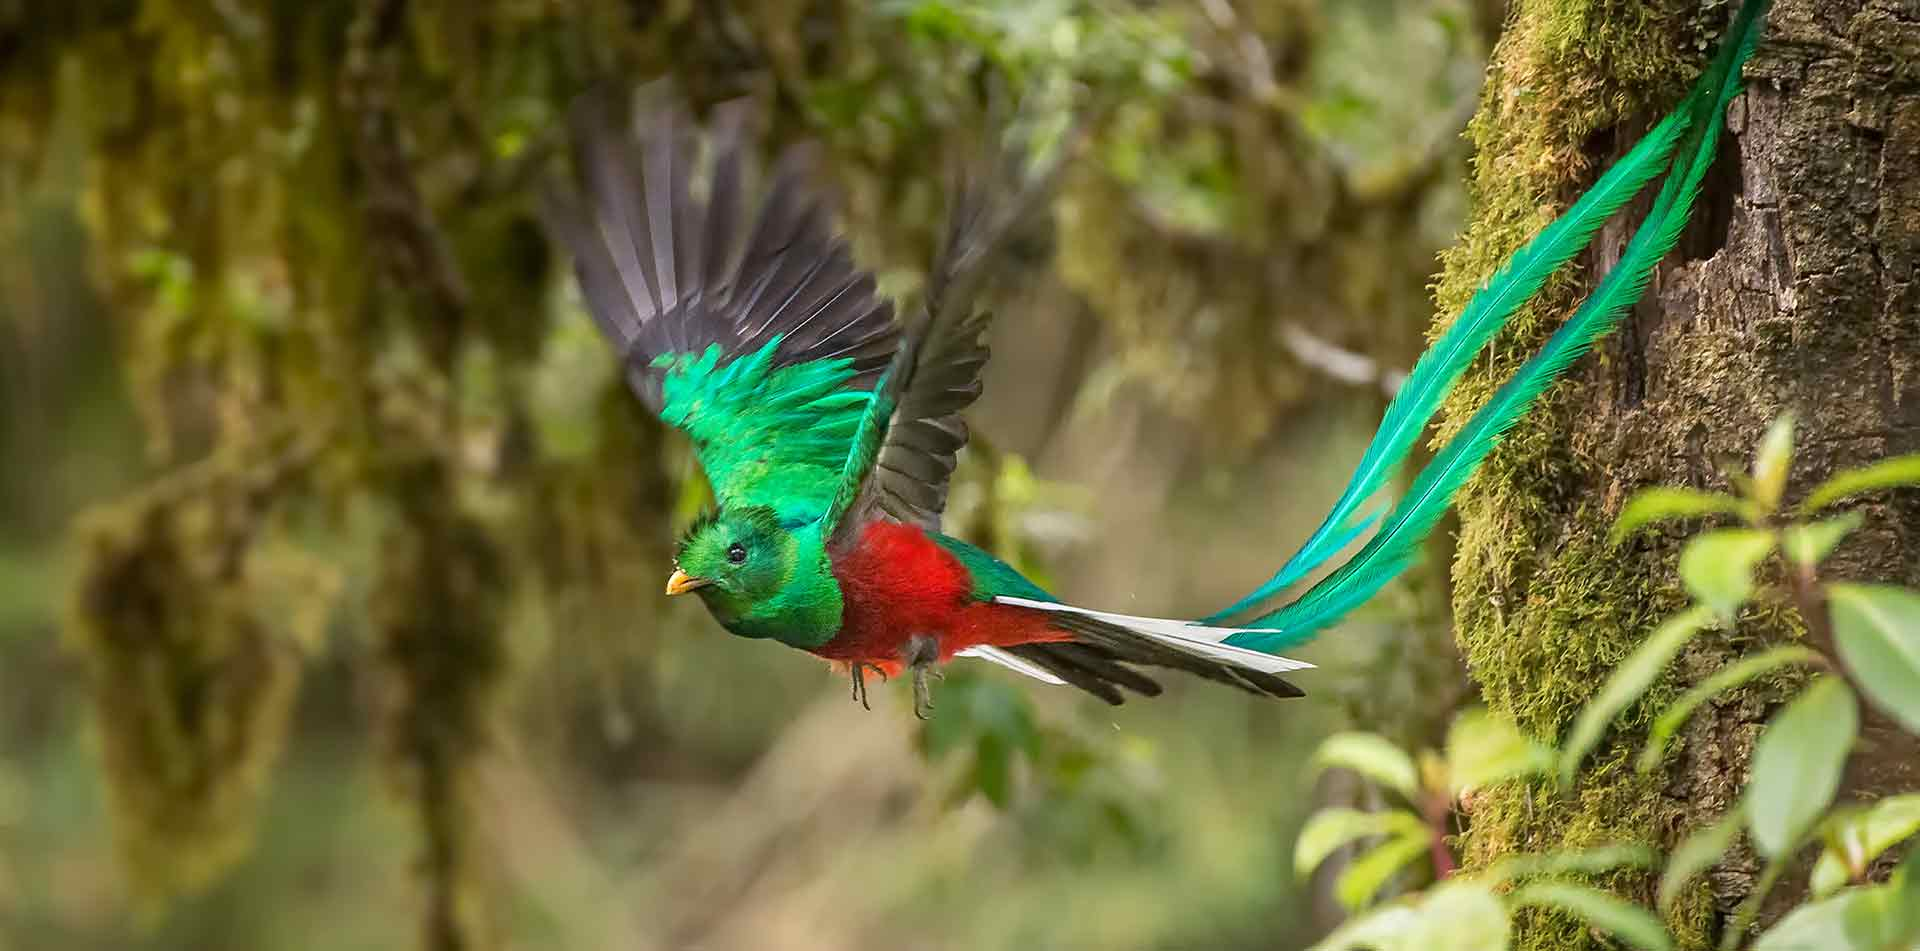 Central America Panama quetzal bird of paradise taking flight - luxury vacation destinations